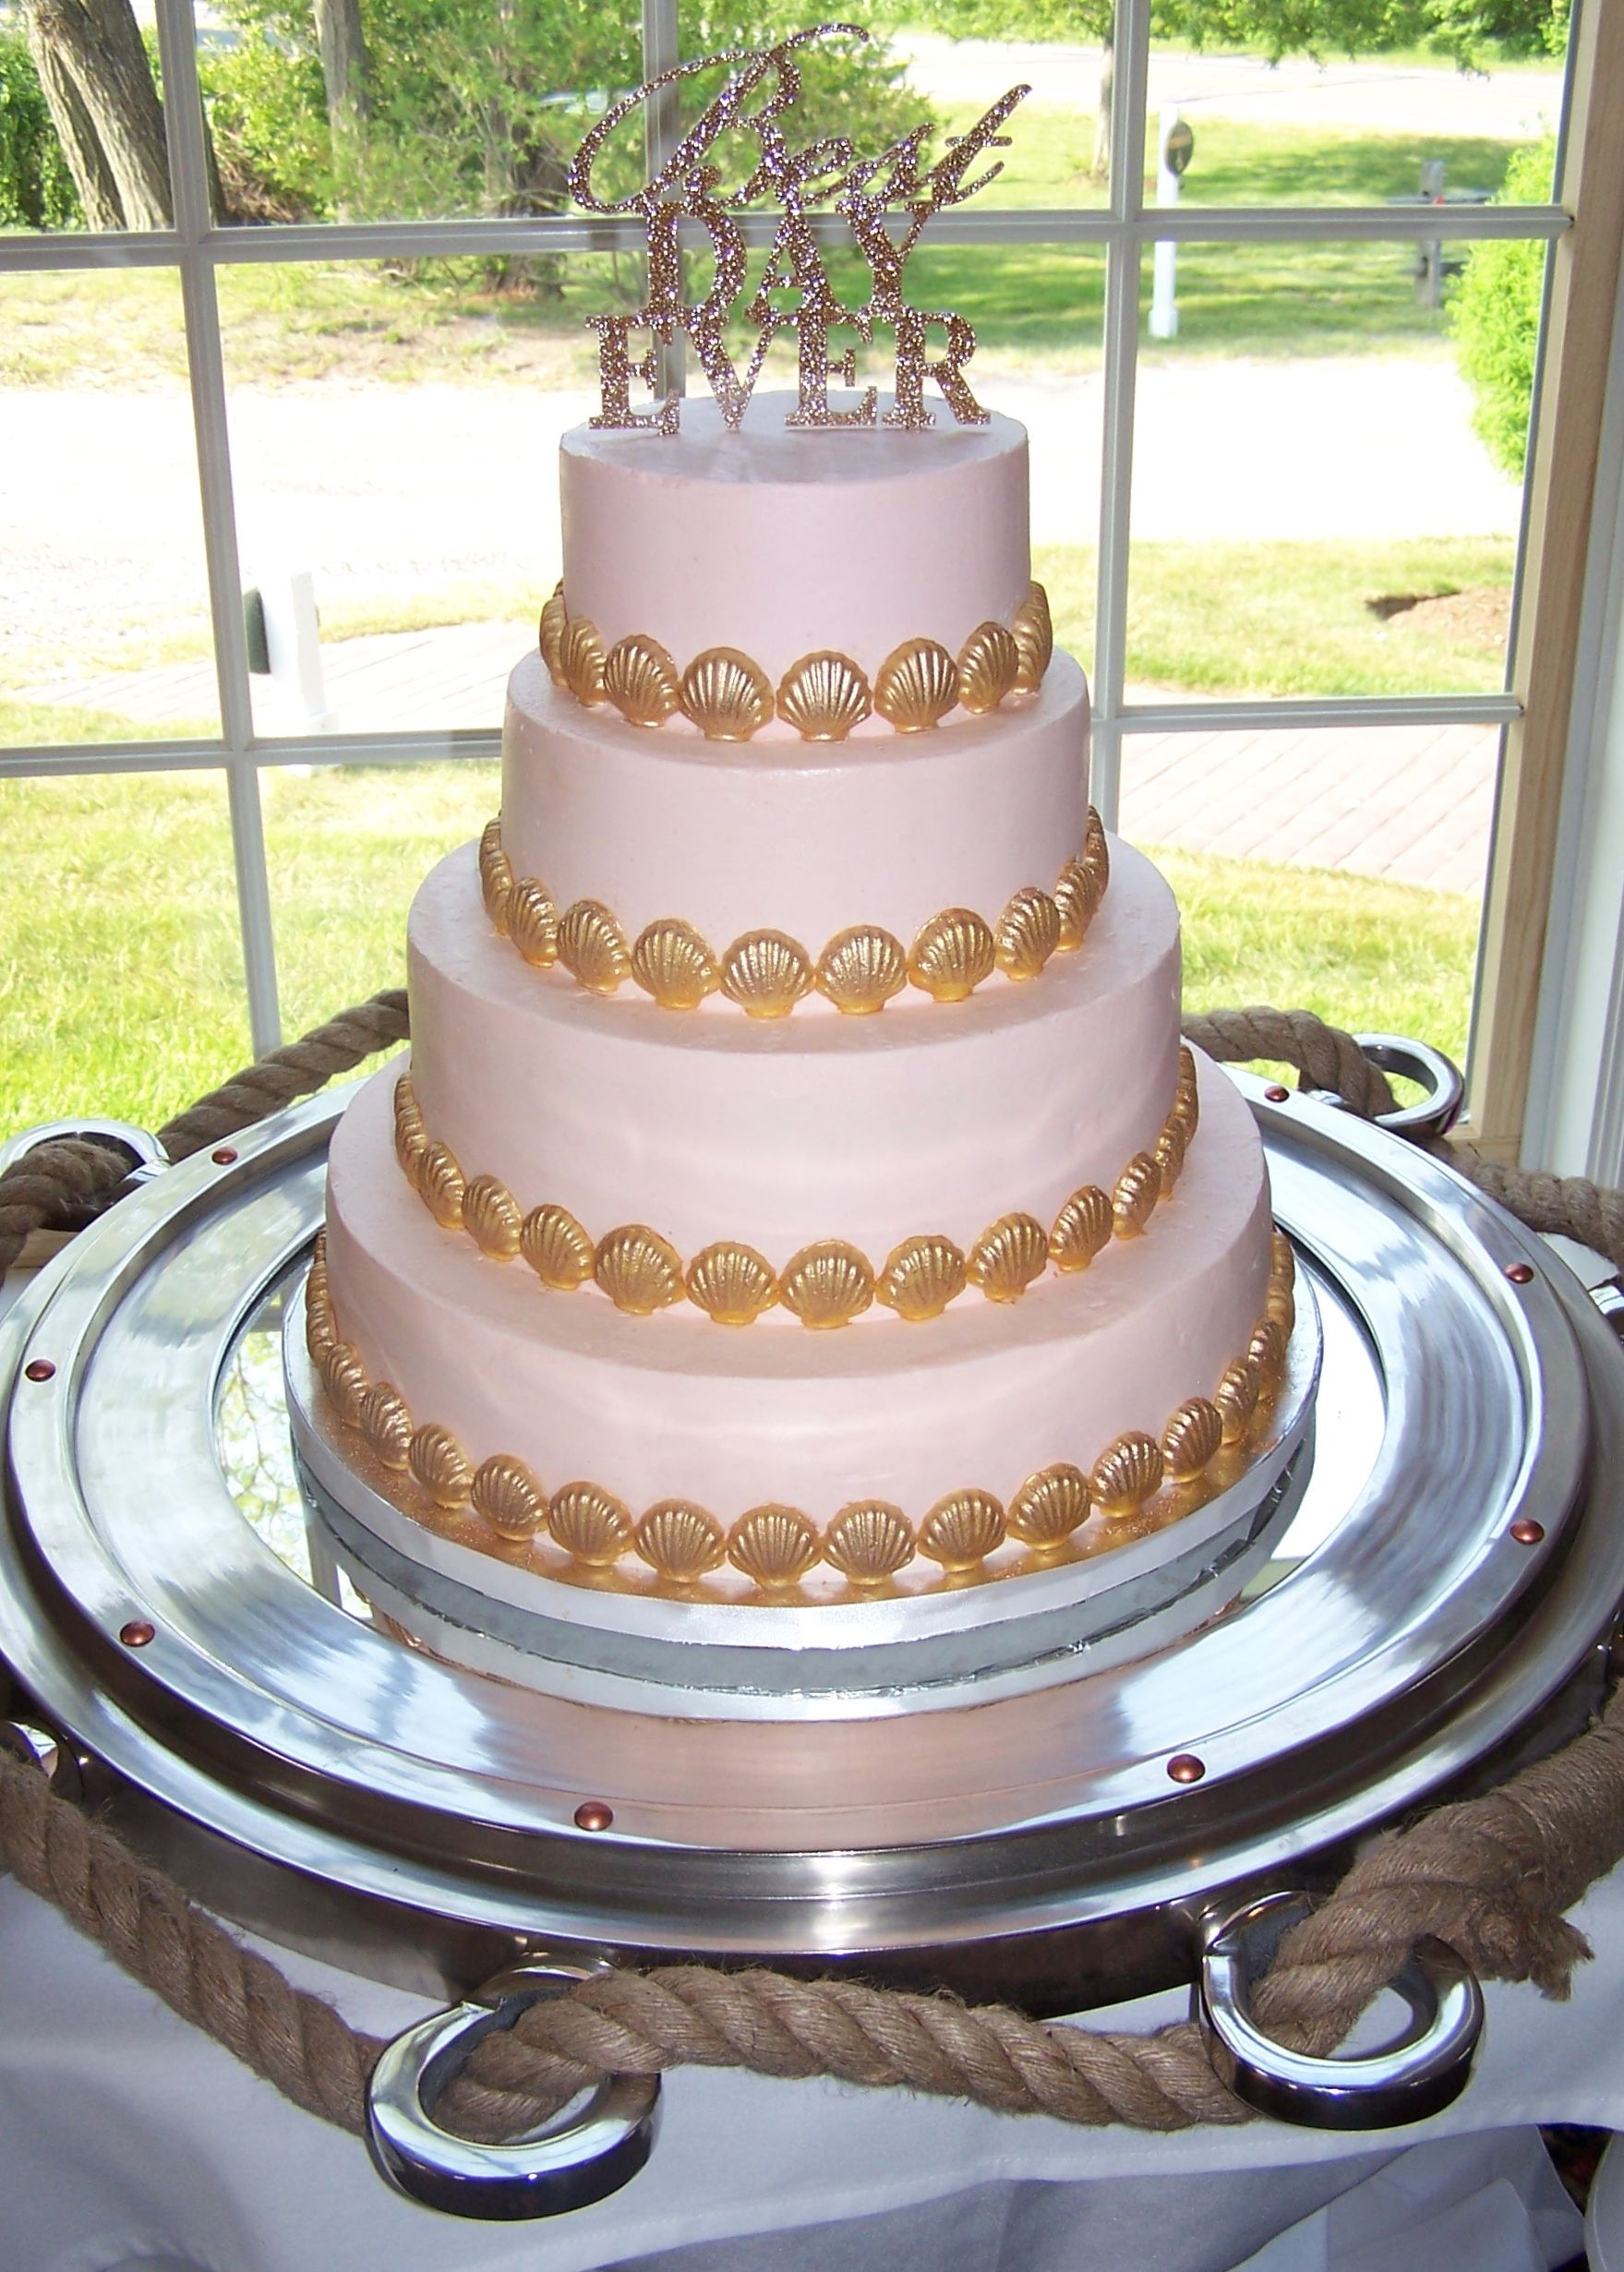 Blush  buttercream and gold shells by Kiss Me Cakes, Wellfleet, at the Captain Linnell House, Orleans, MA.